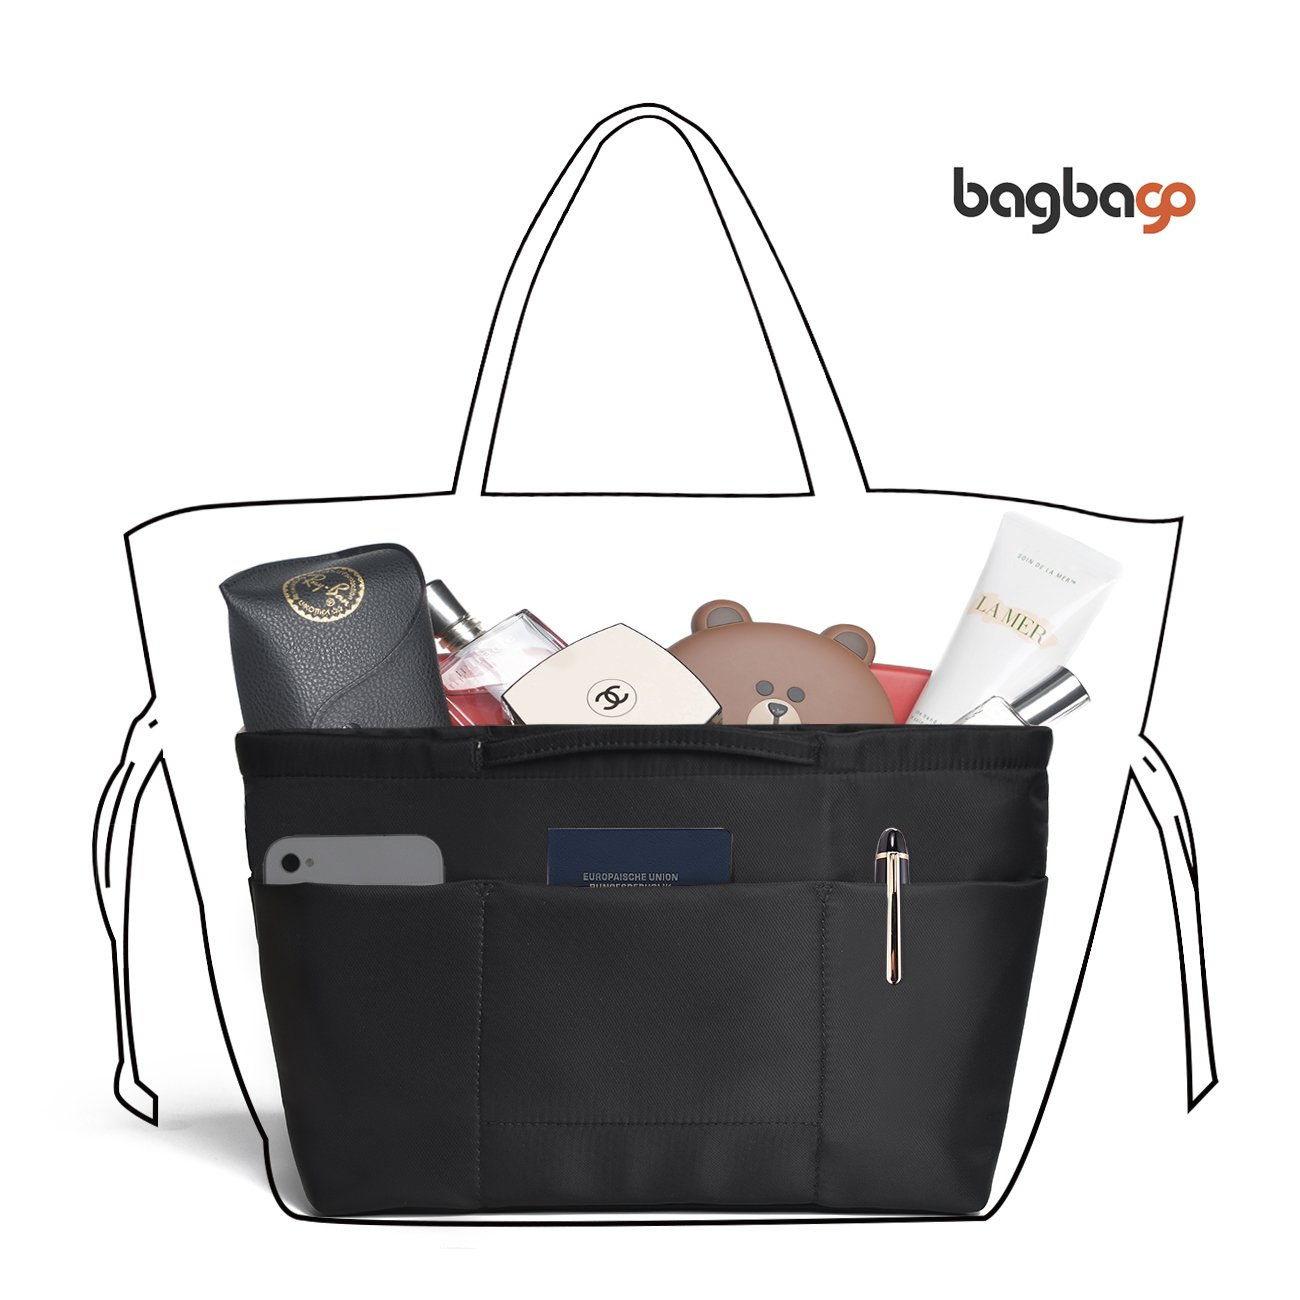 13 Pockets Purse Organizer Tote Insert Liner Bag Anti-Theft Keychain(M,Black) by BES CHAN (Image #1)